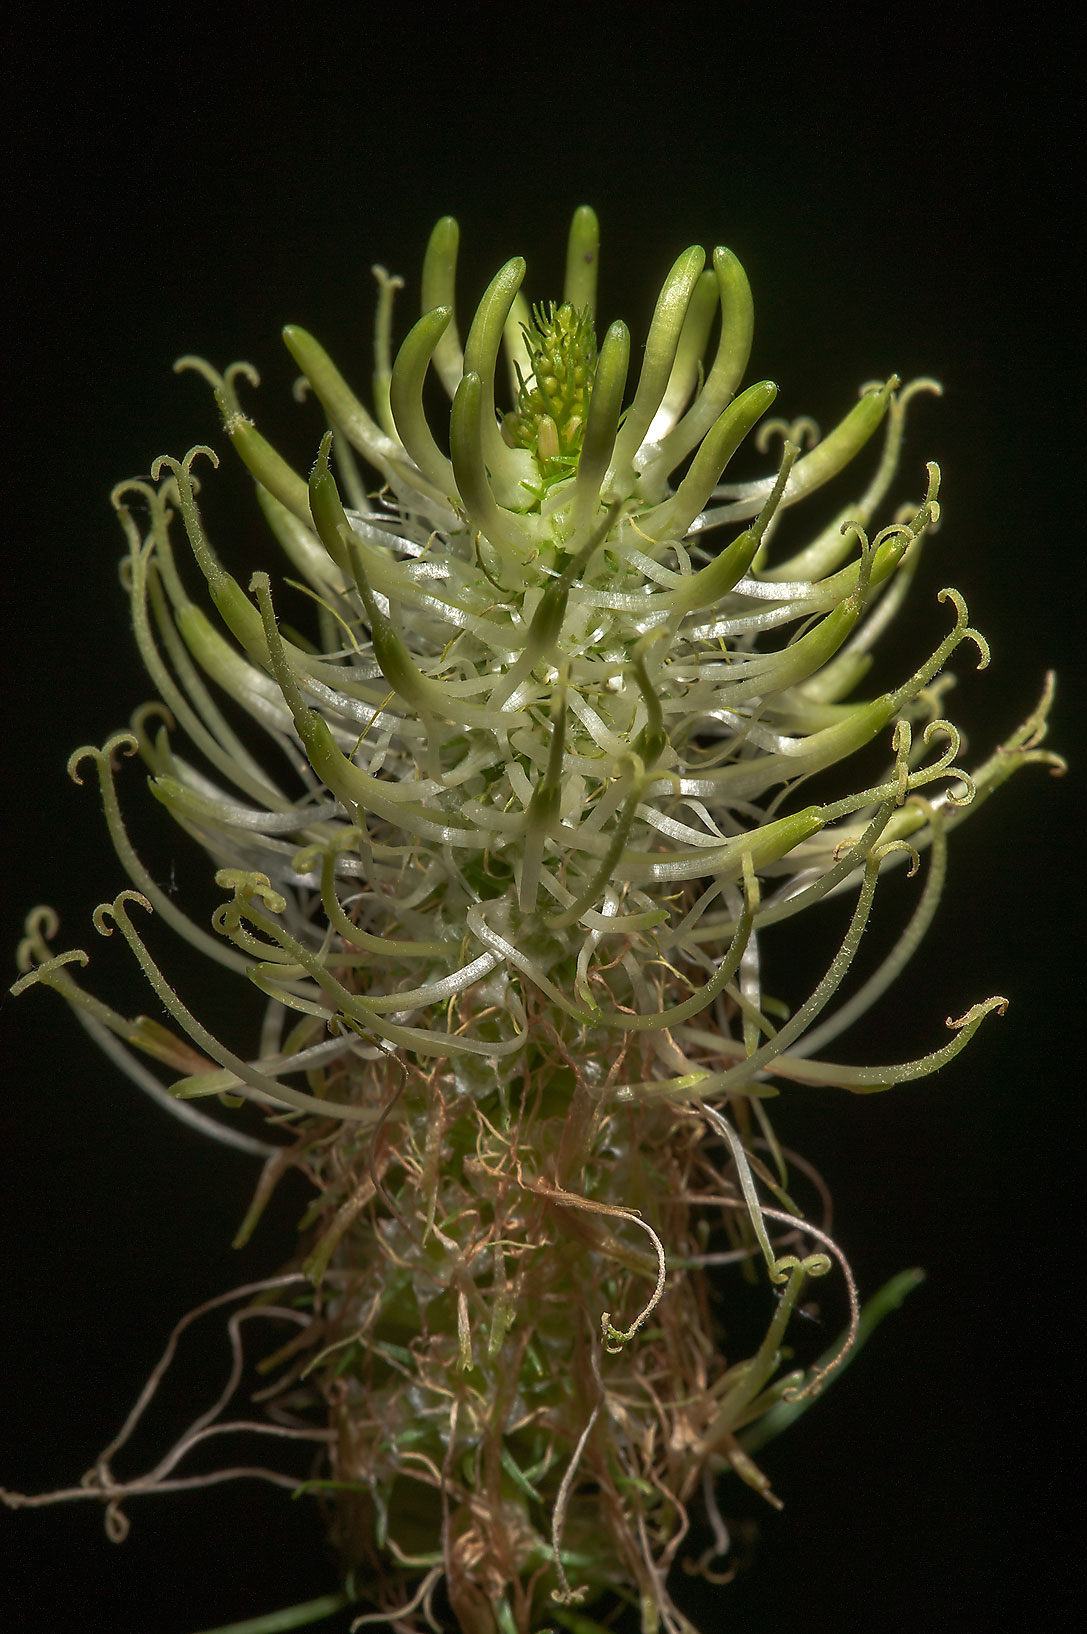 Close up of a white flower of Spiked Rampion...a suburb of St.Petersburg, Russia